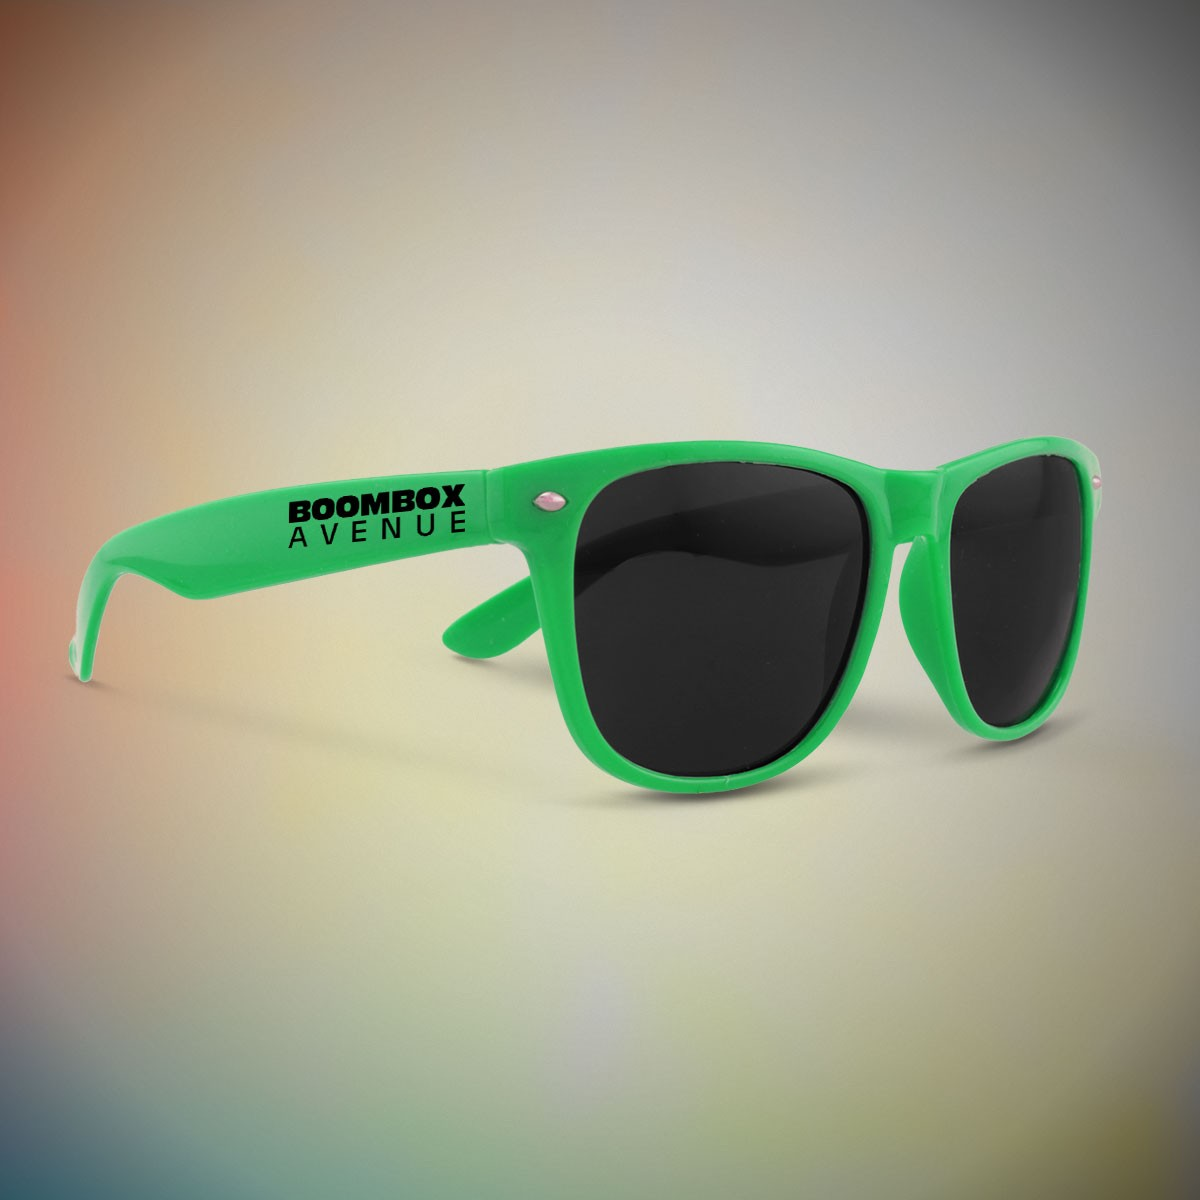 Premium Green Classic Retro Sunglasses